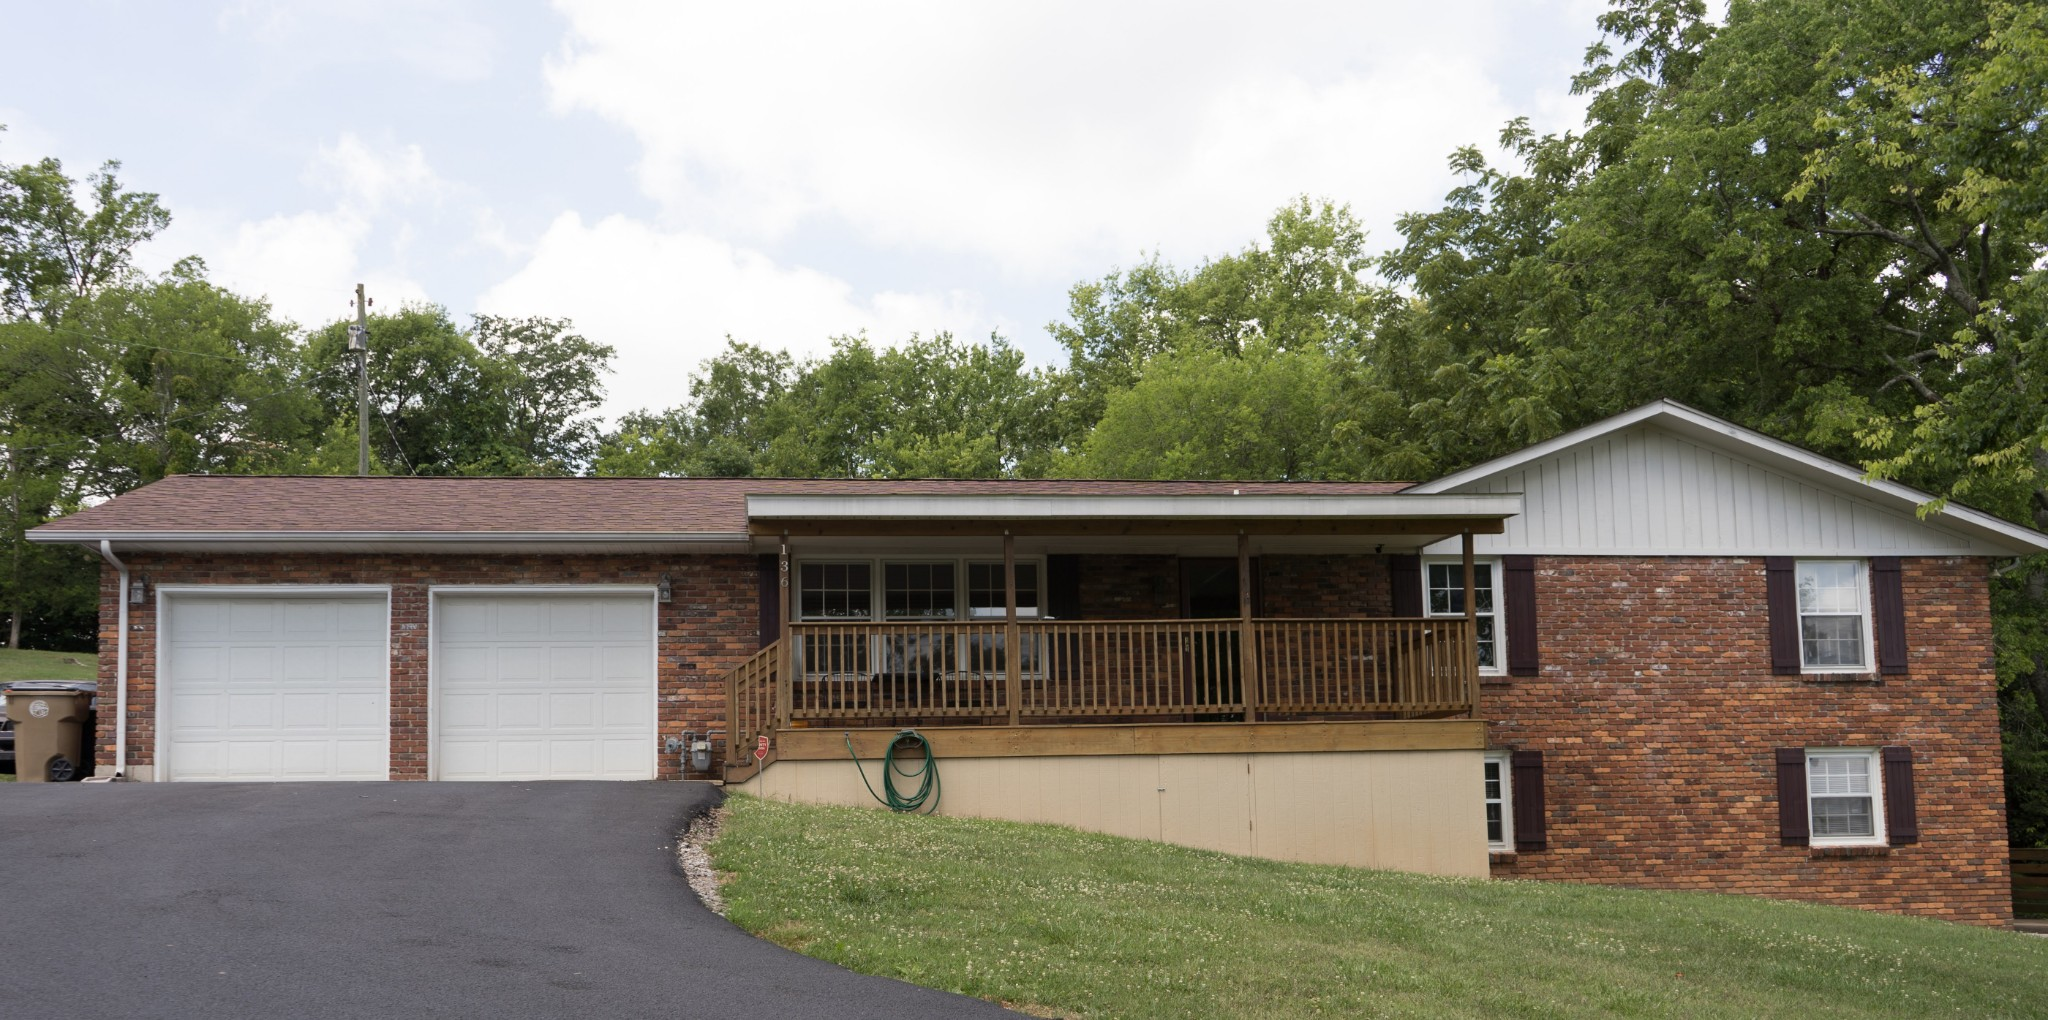 4 BR/3 BA All Brick Home On Nearly An Acre Lot!  136 Port Drive, Madison, TN,  37115